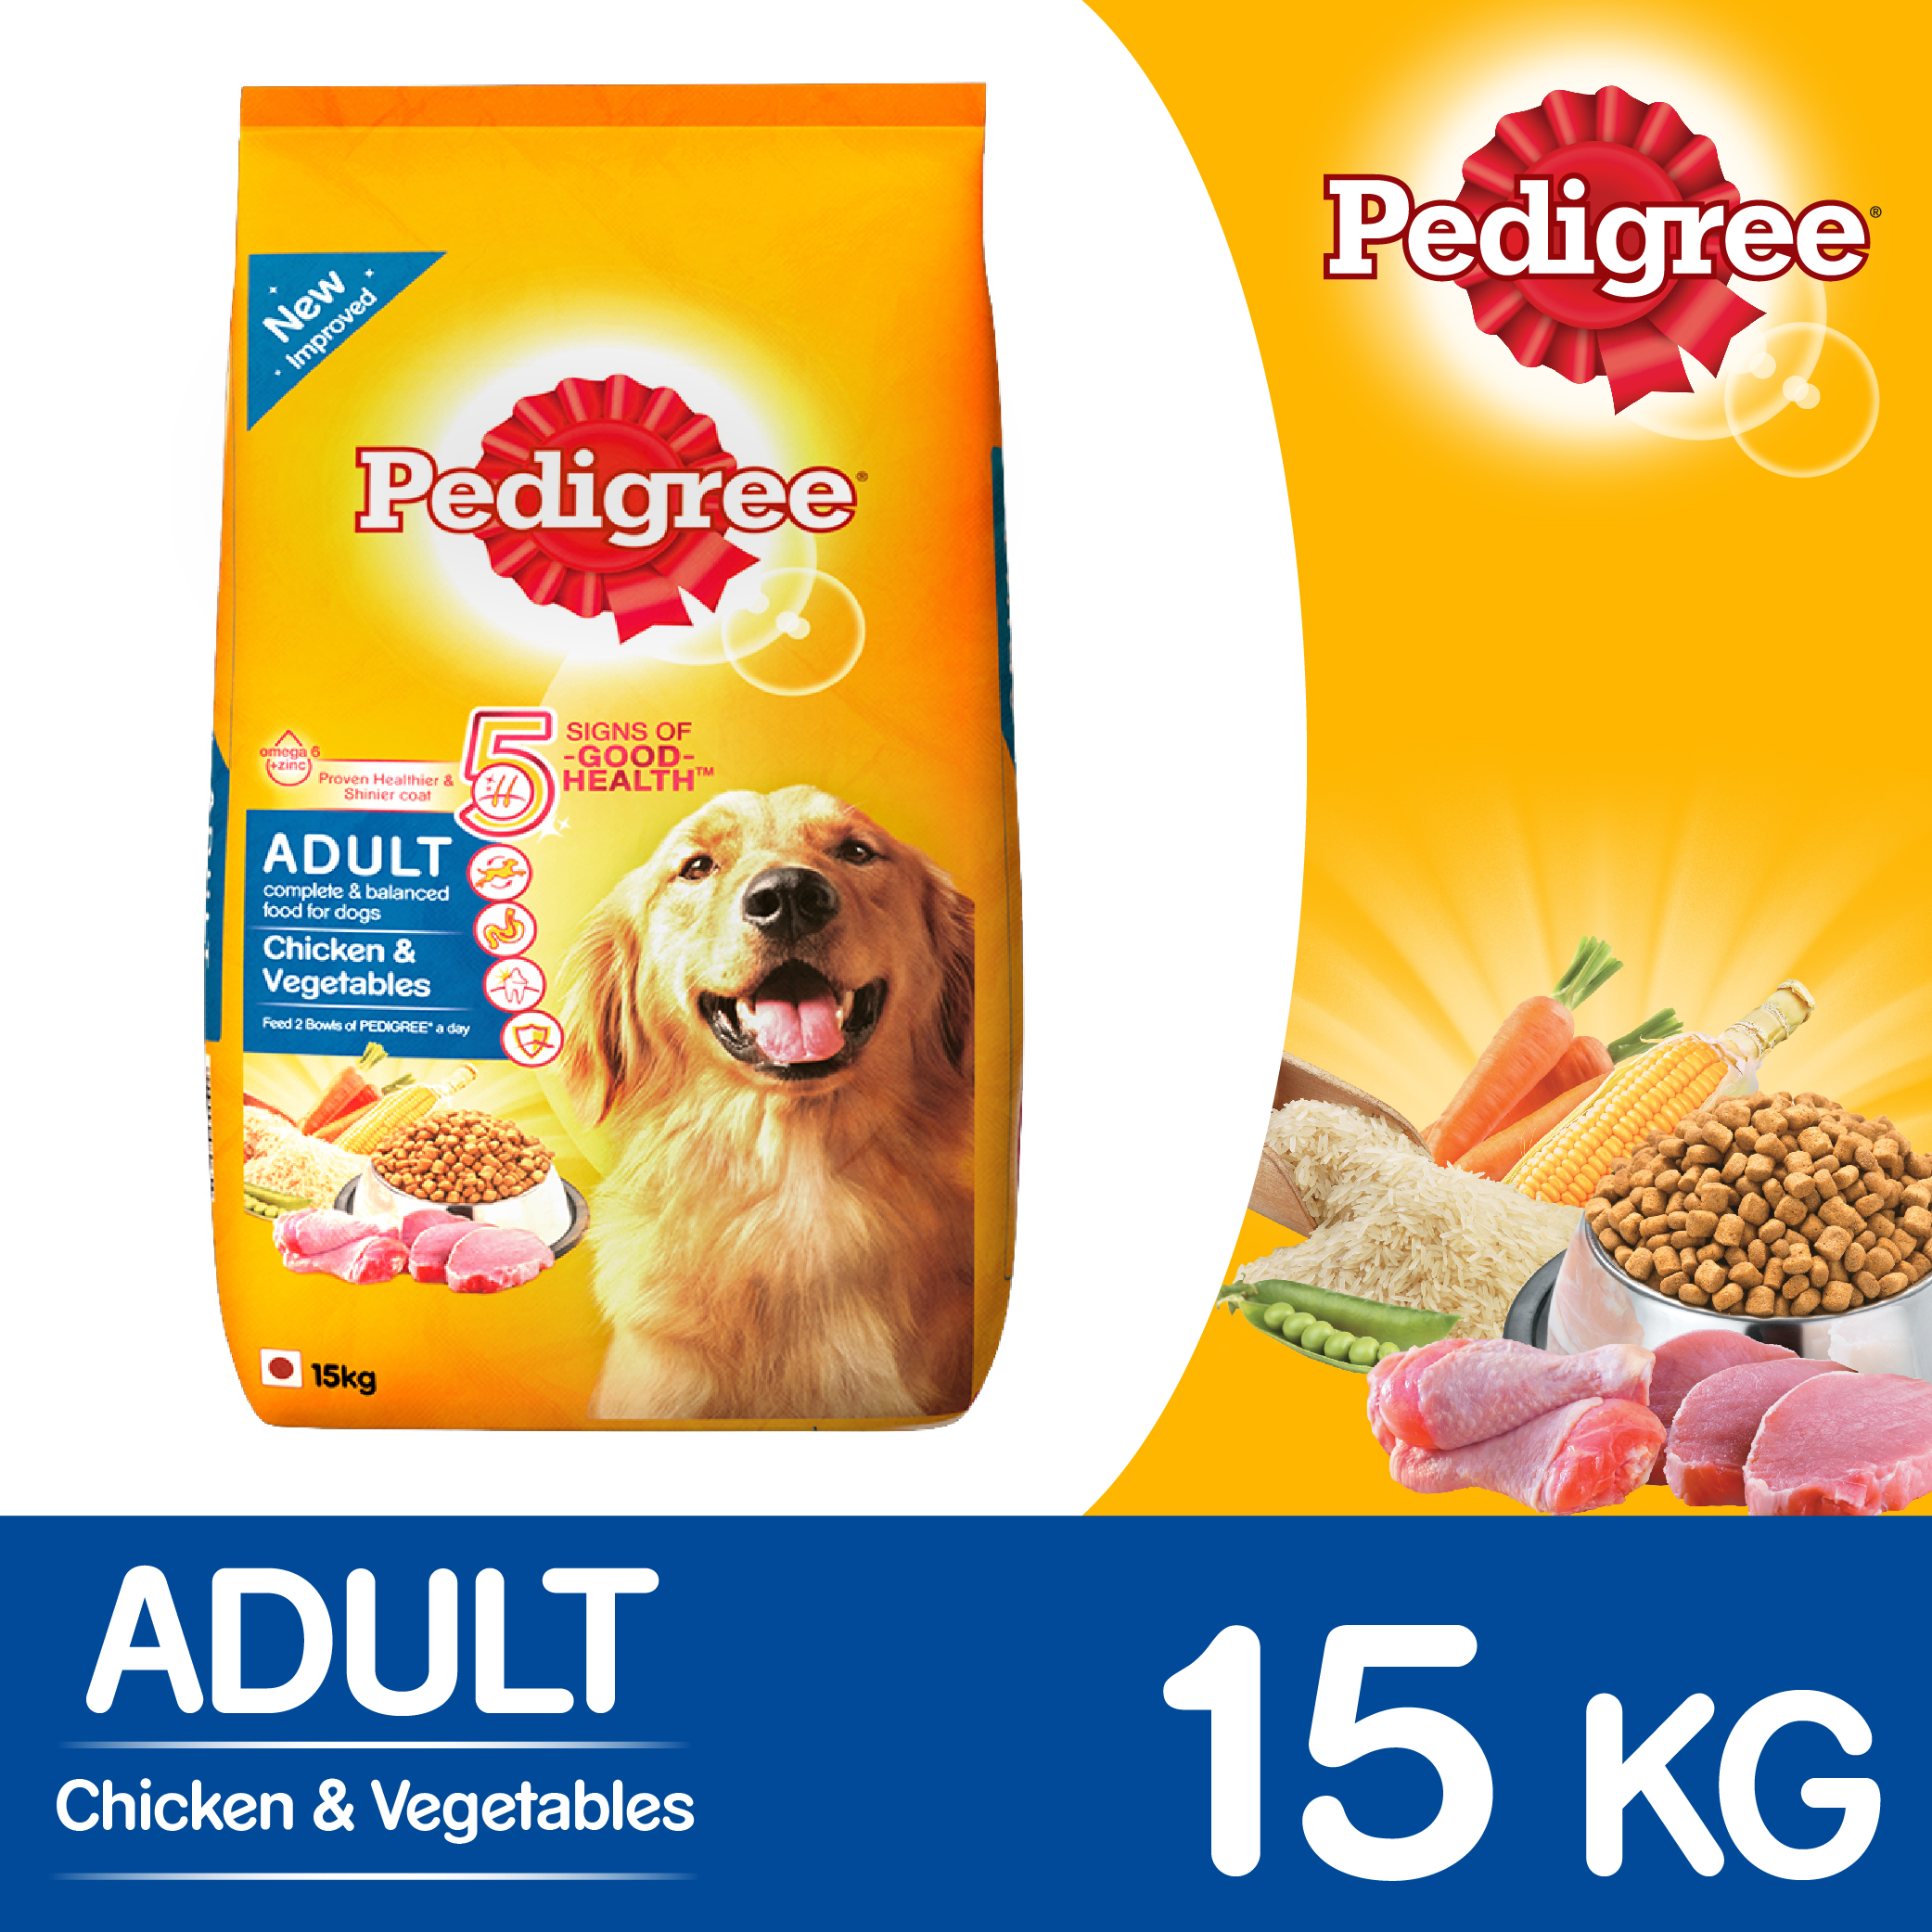 Pedigree Cat Food Products